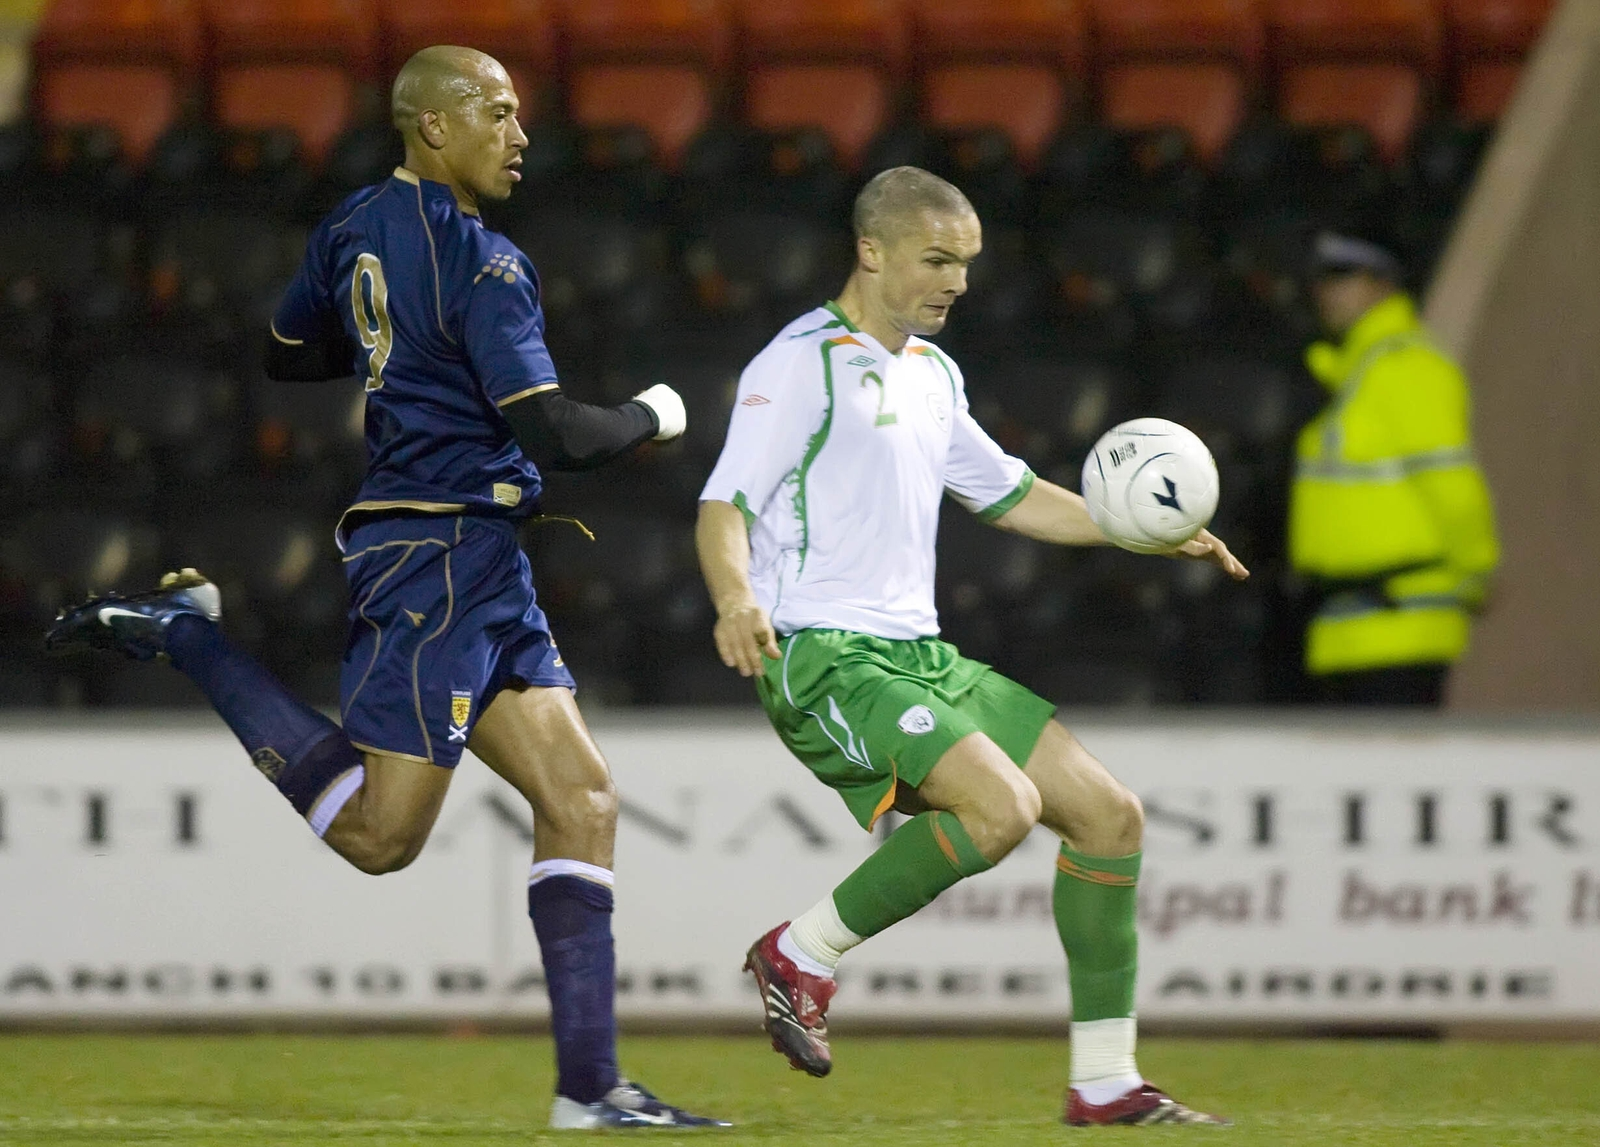 Image - Goodwin is chased down by Scotland debutant Chris Iwelumo during the 2007 B international